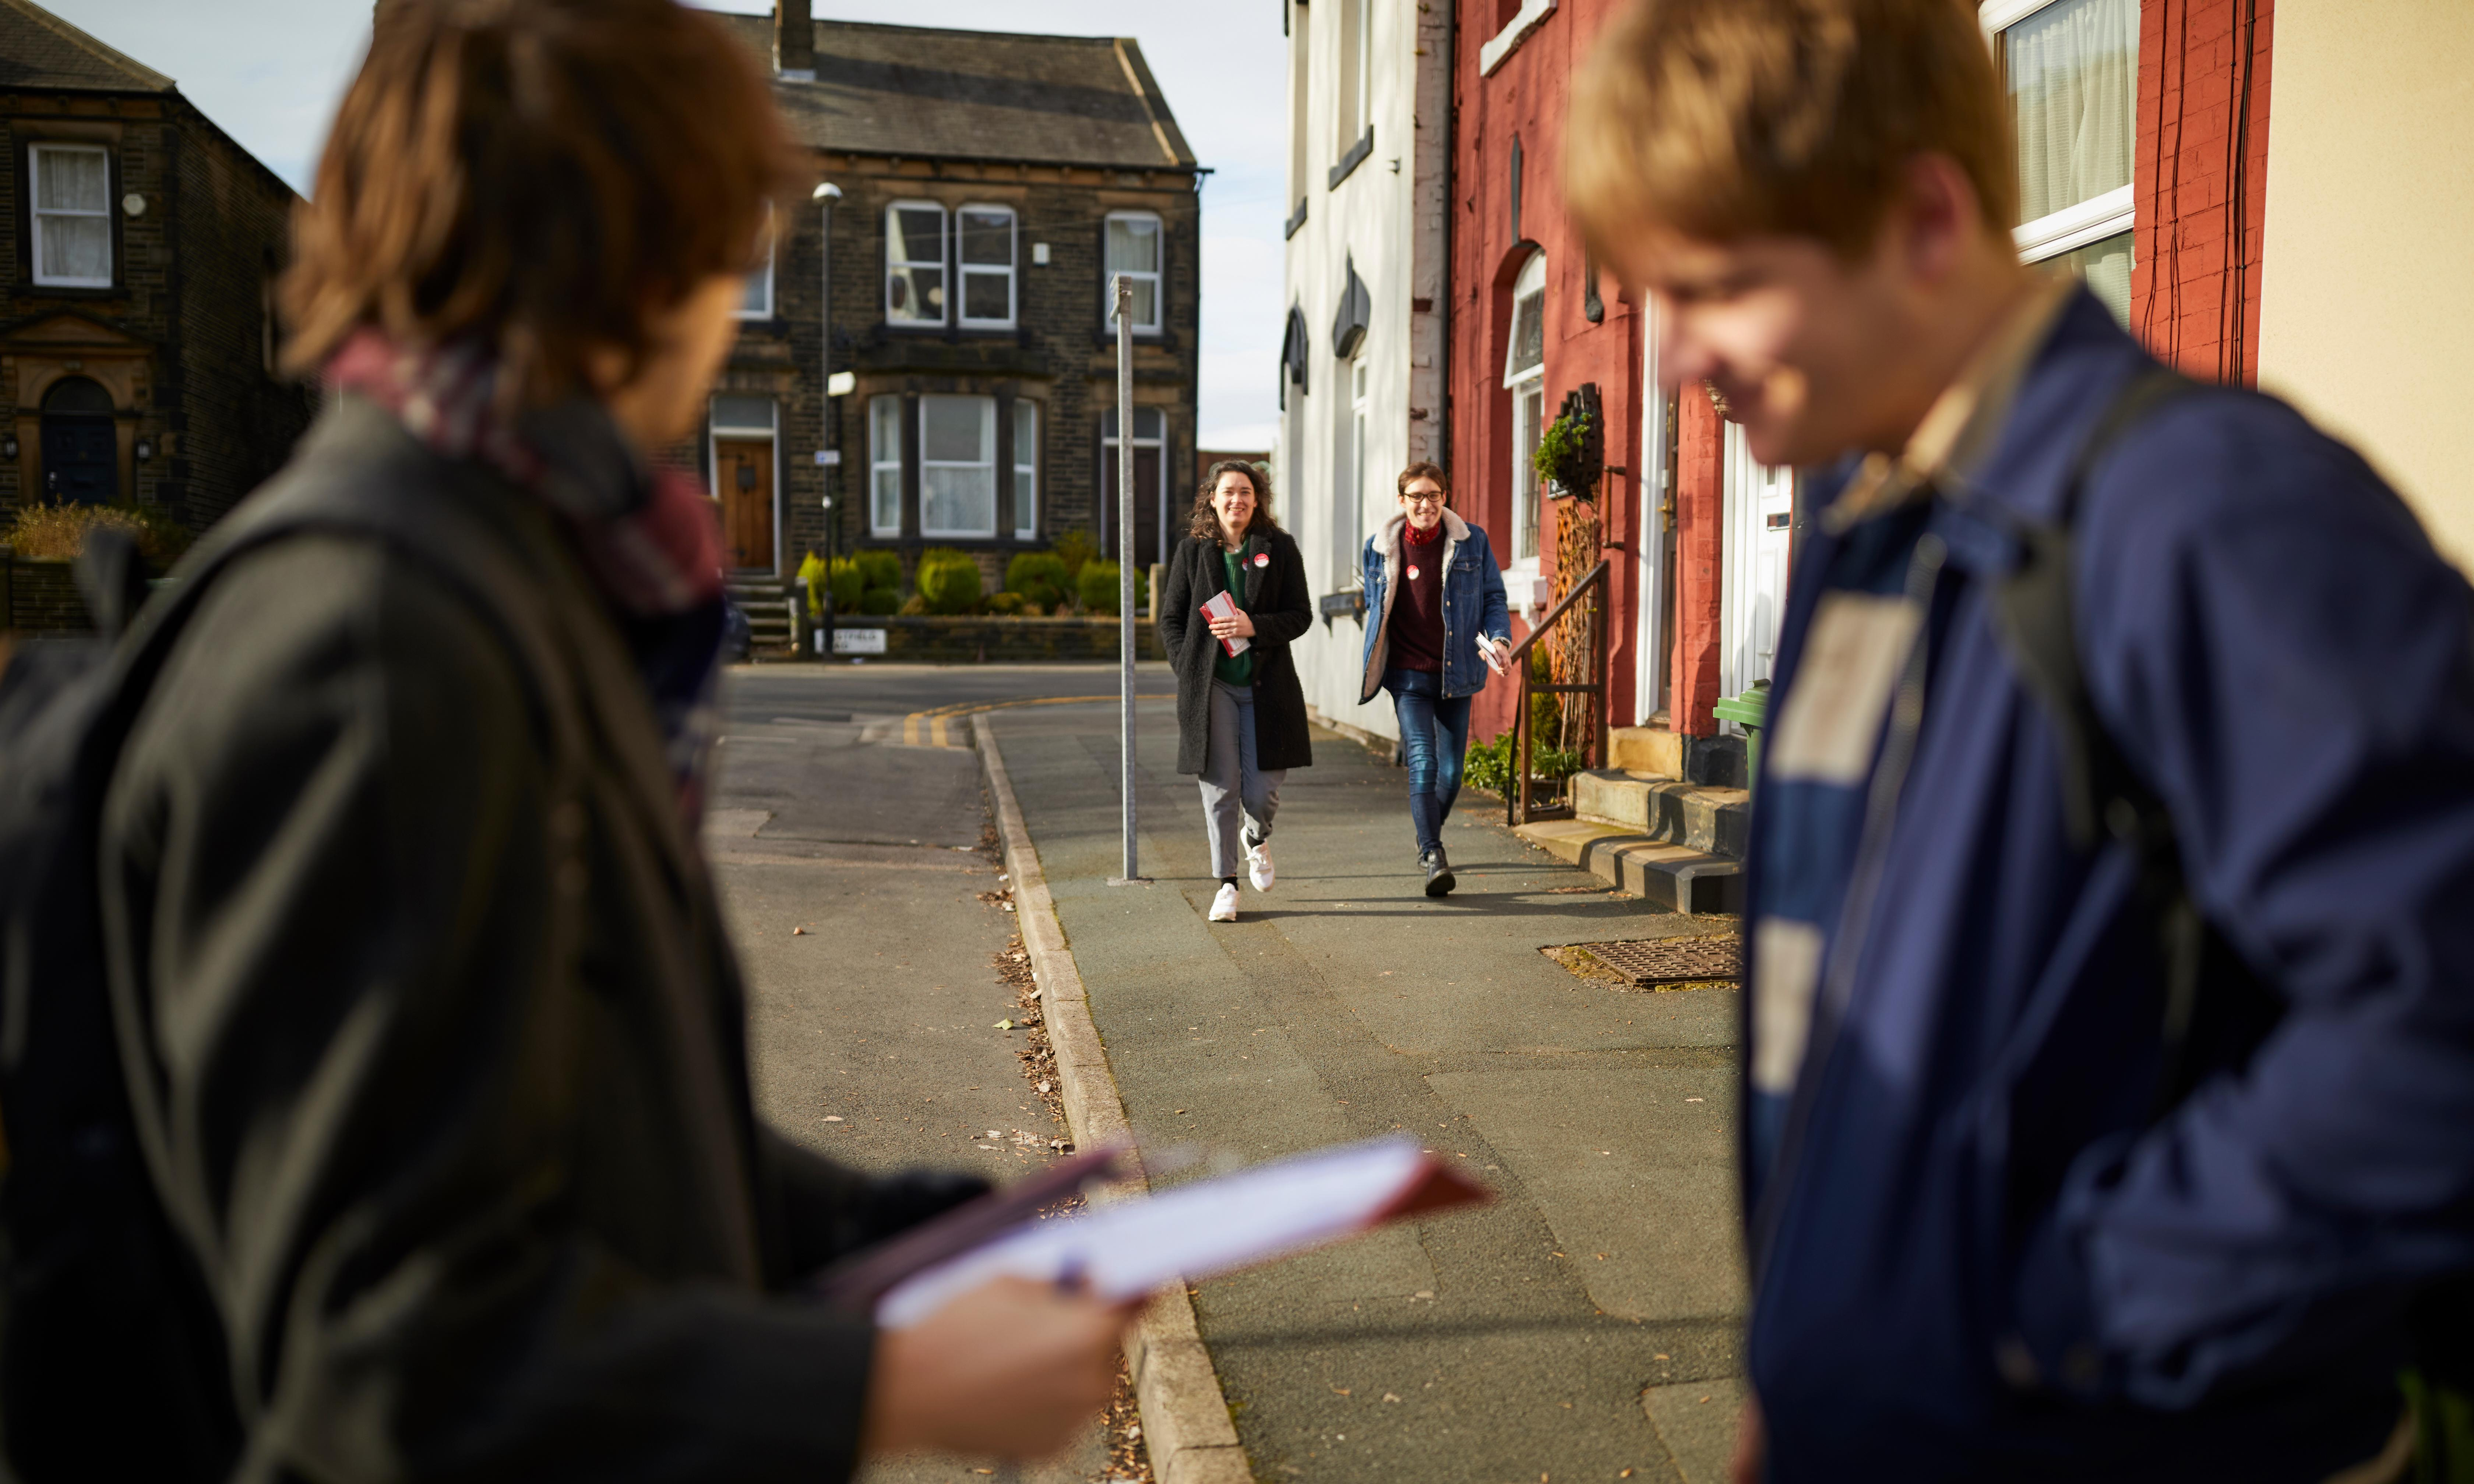 The Tories have underestimated young voters' anger. That could be costly